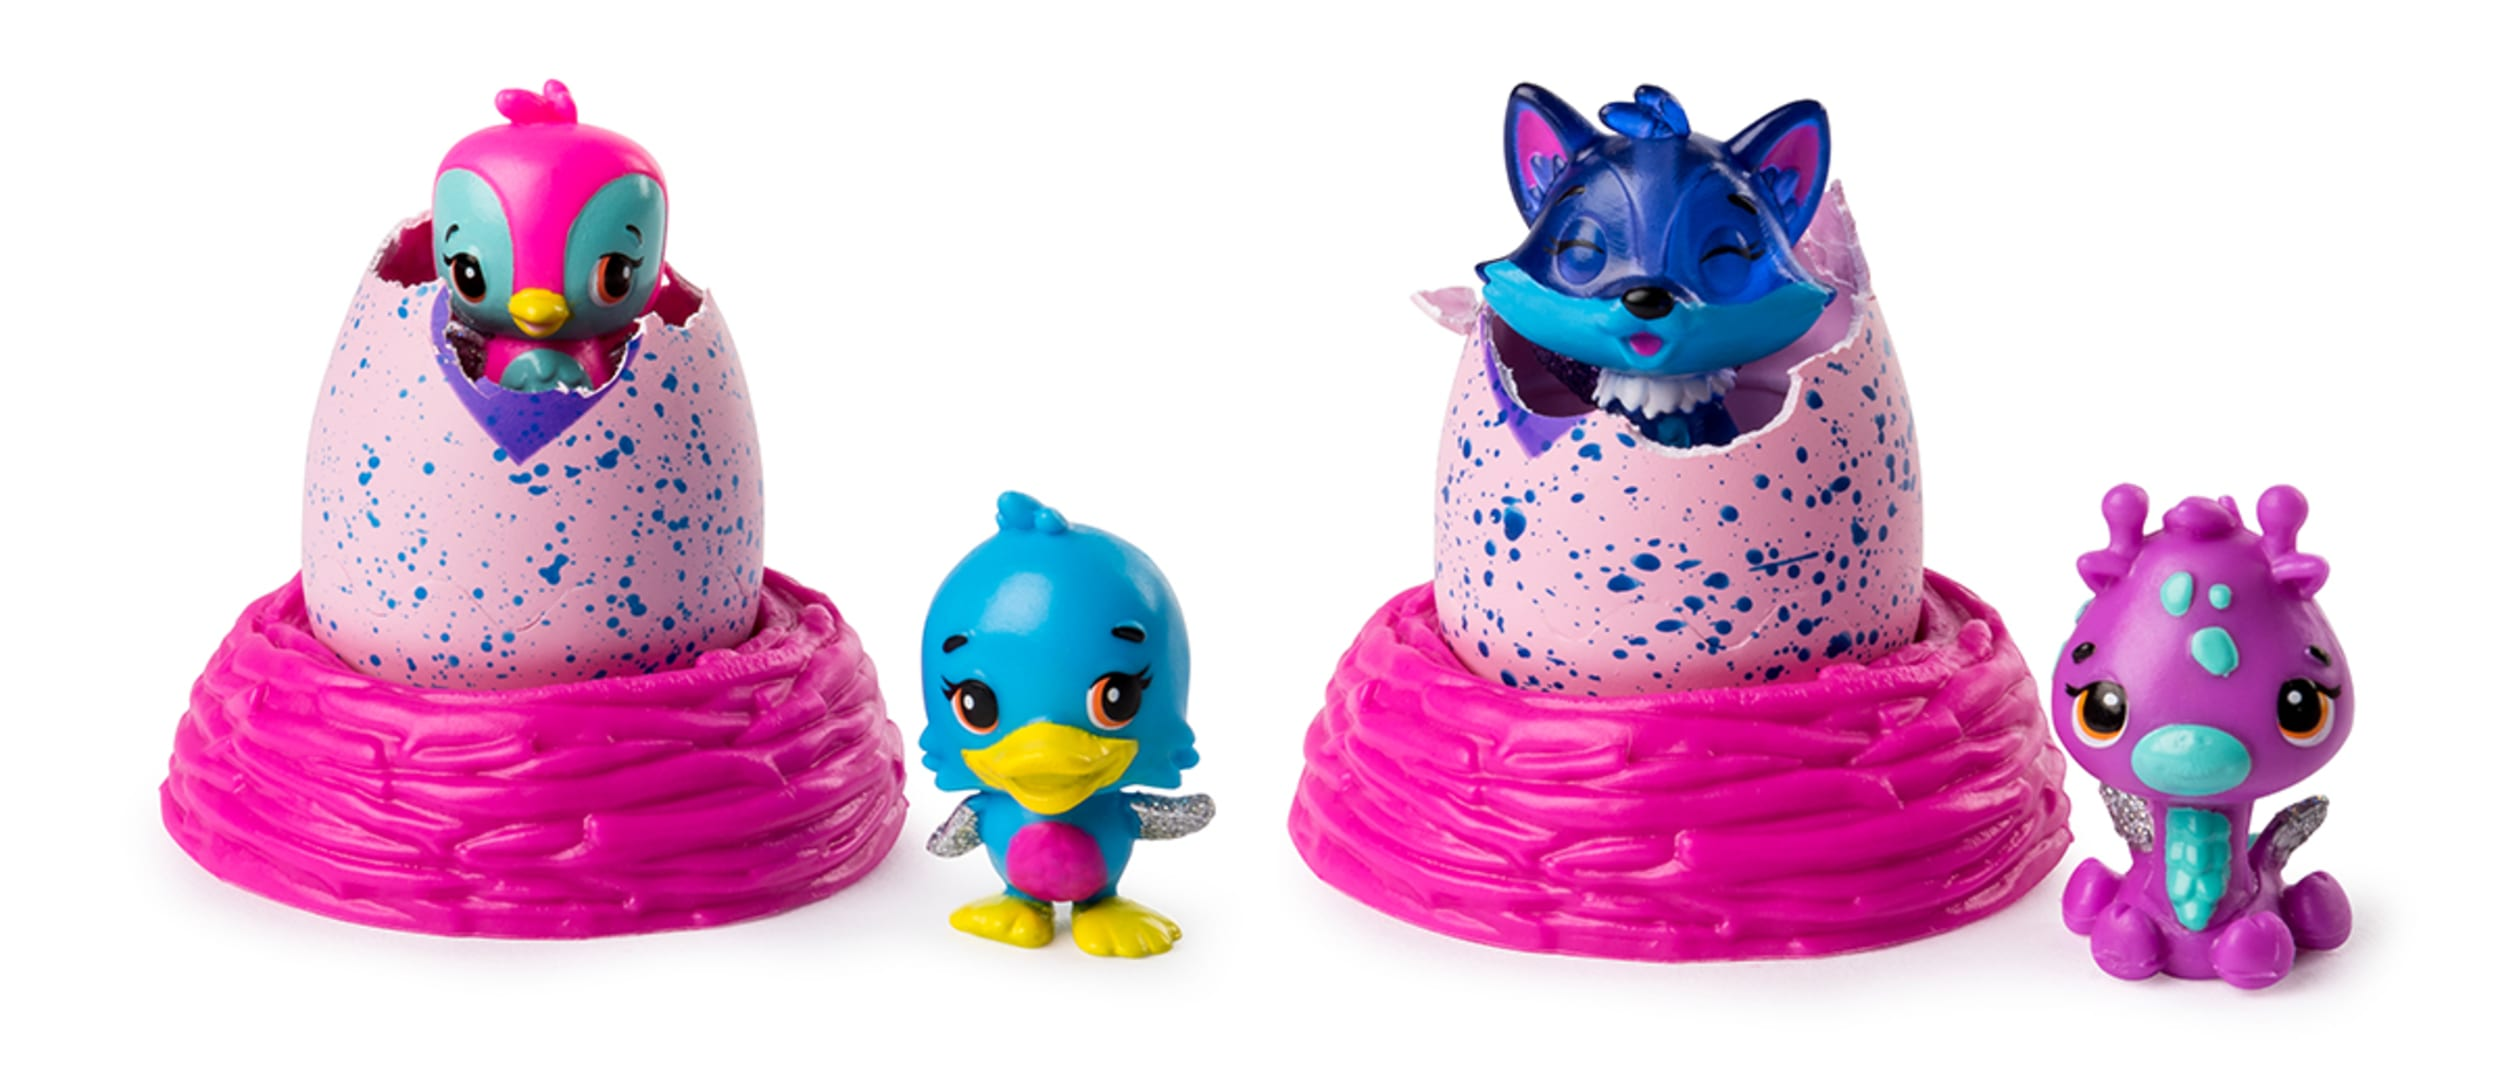 Receive your free pack of Hatchimals Colleggtibles!*